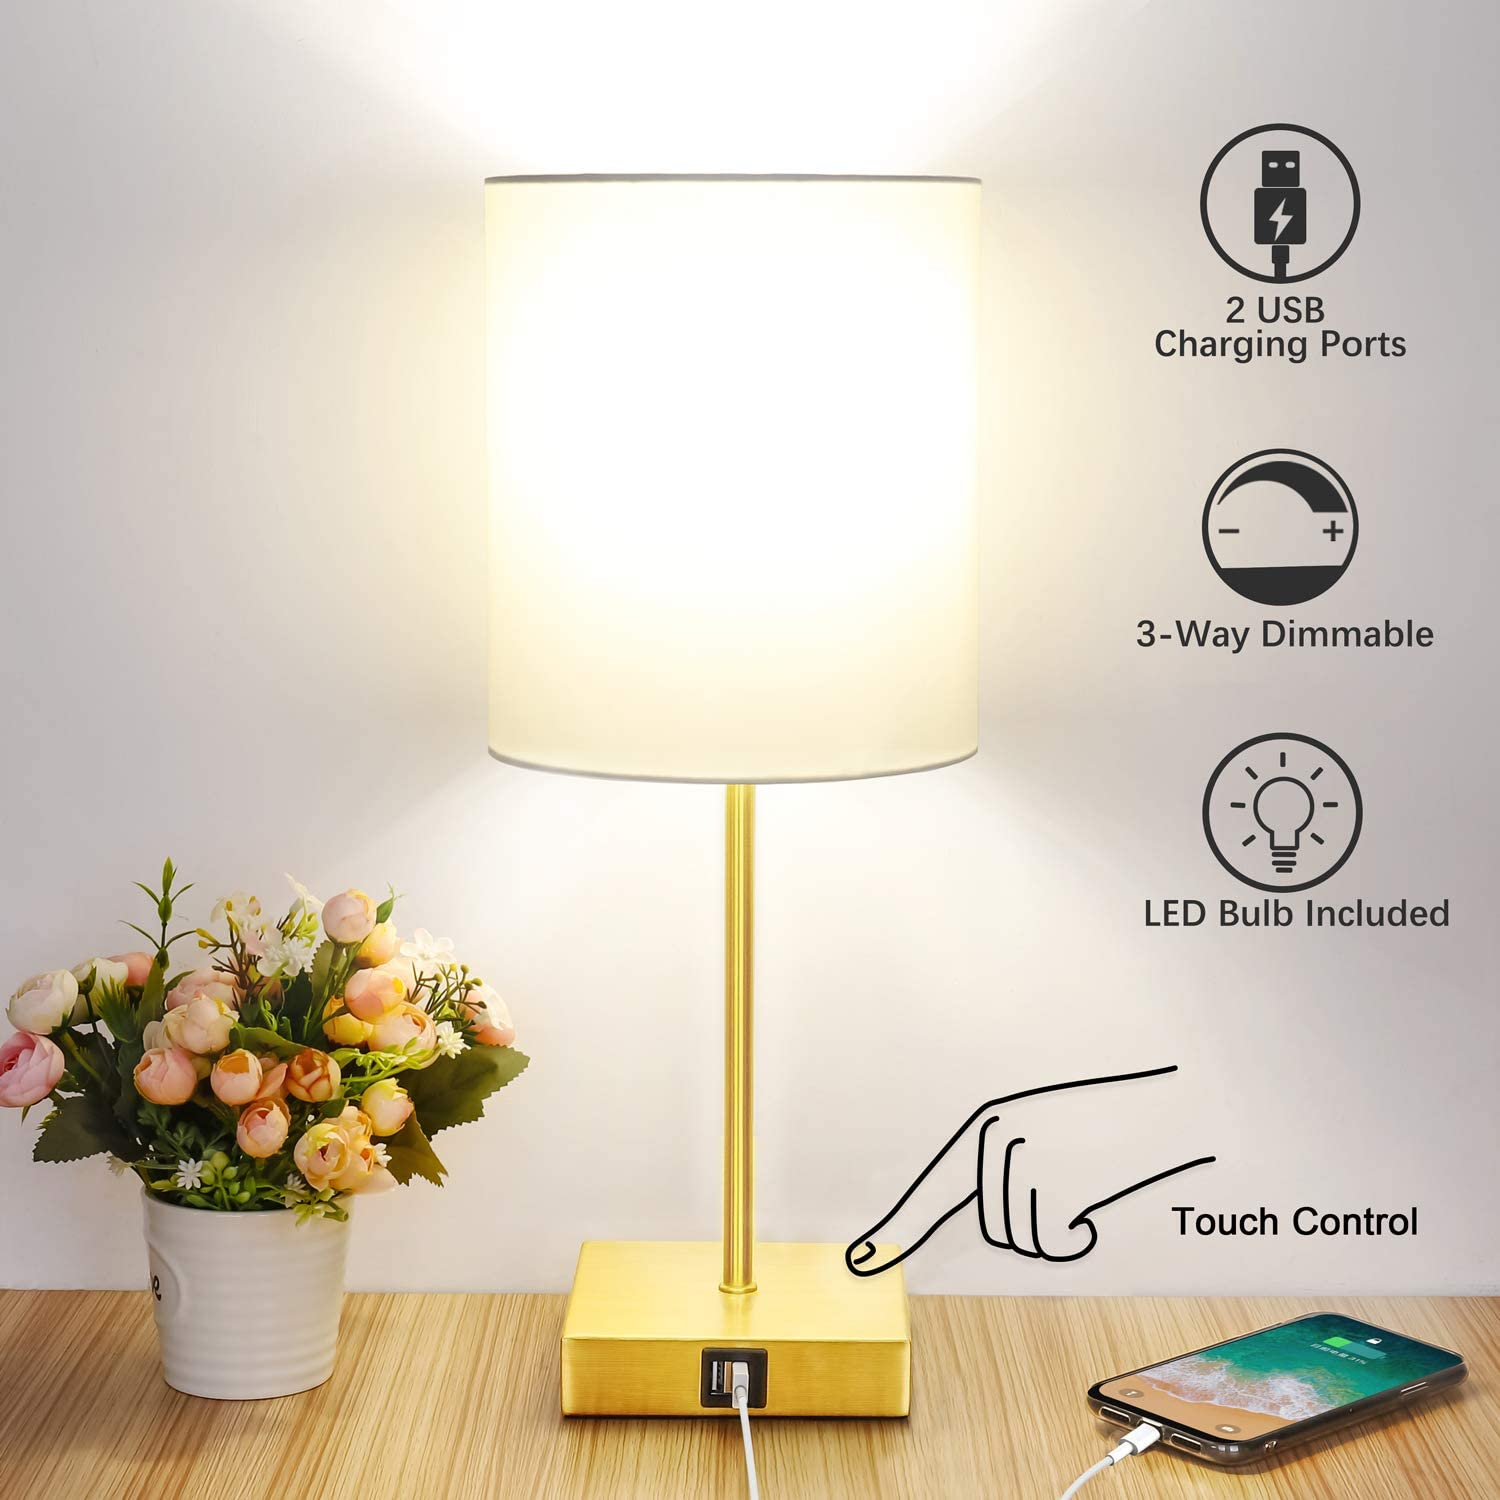 Touch Control Table Lamp, 3-Way Dimmable, 2 USB Fast Charging Ports, Bedside Nightstand Lamp with TC Cloth Shade for Bedroom, Living Room, Dorm, Office, 60W Equivalent E26 LED Bulb Included(Gold)